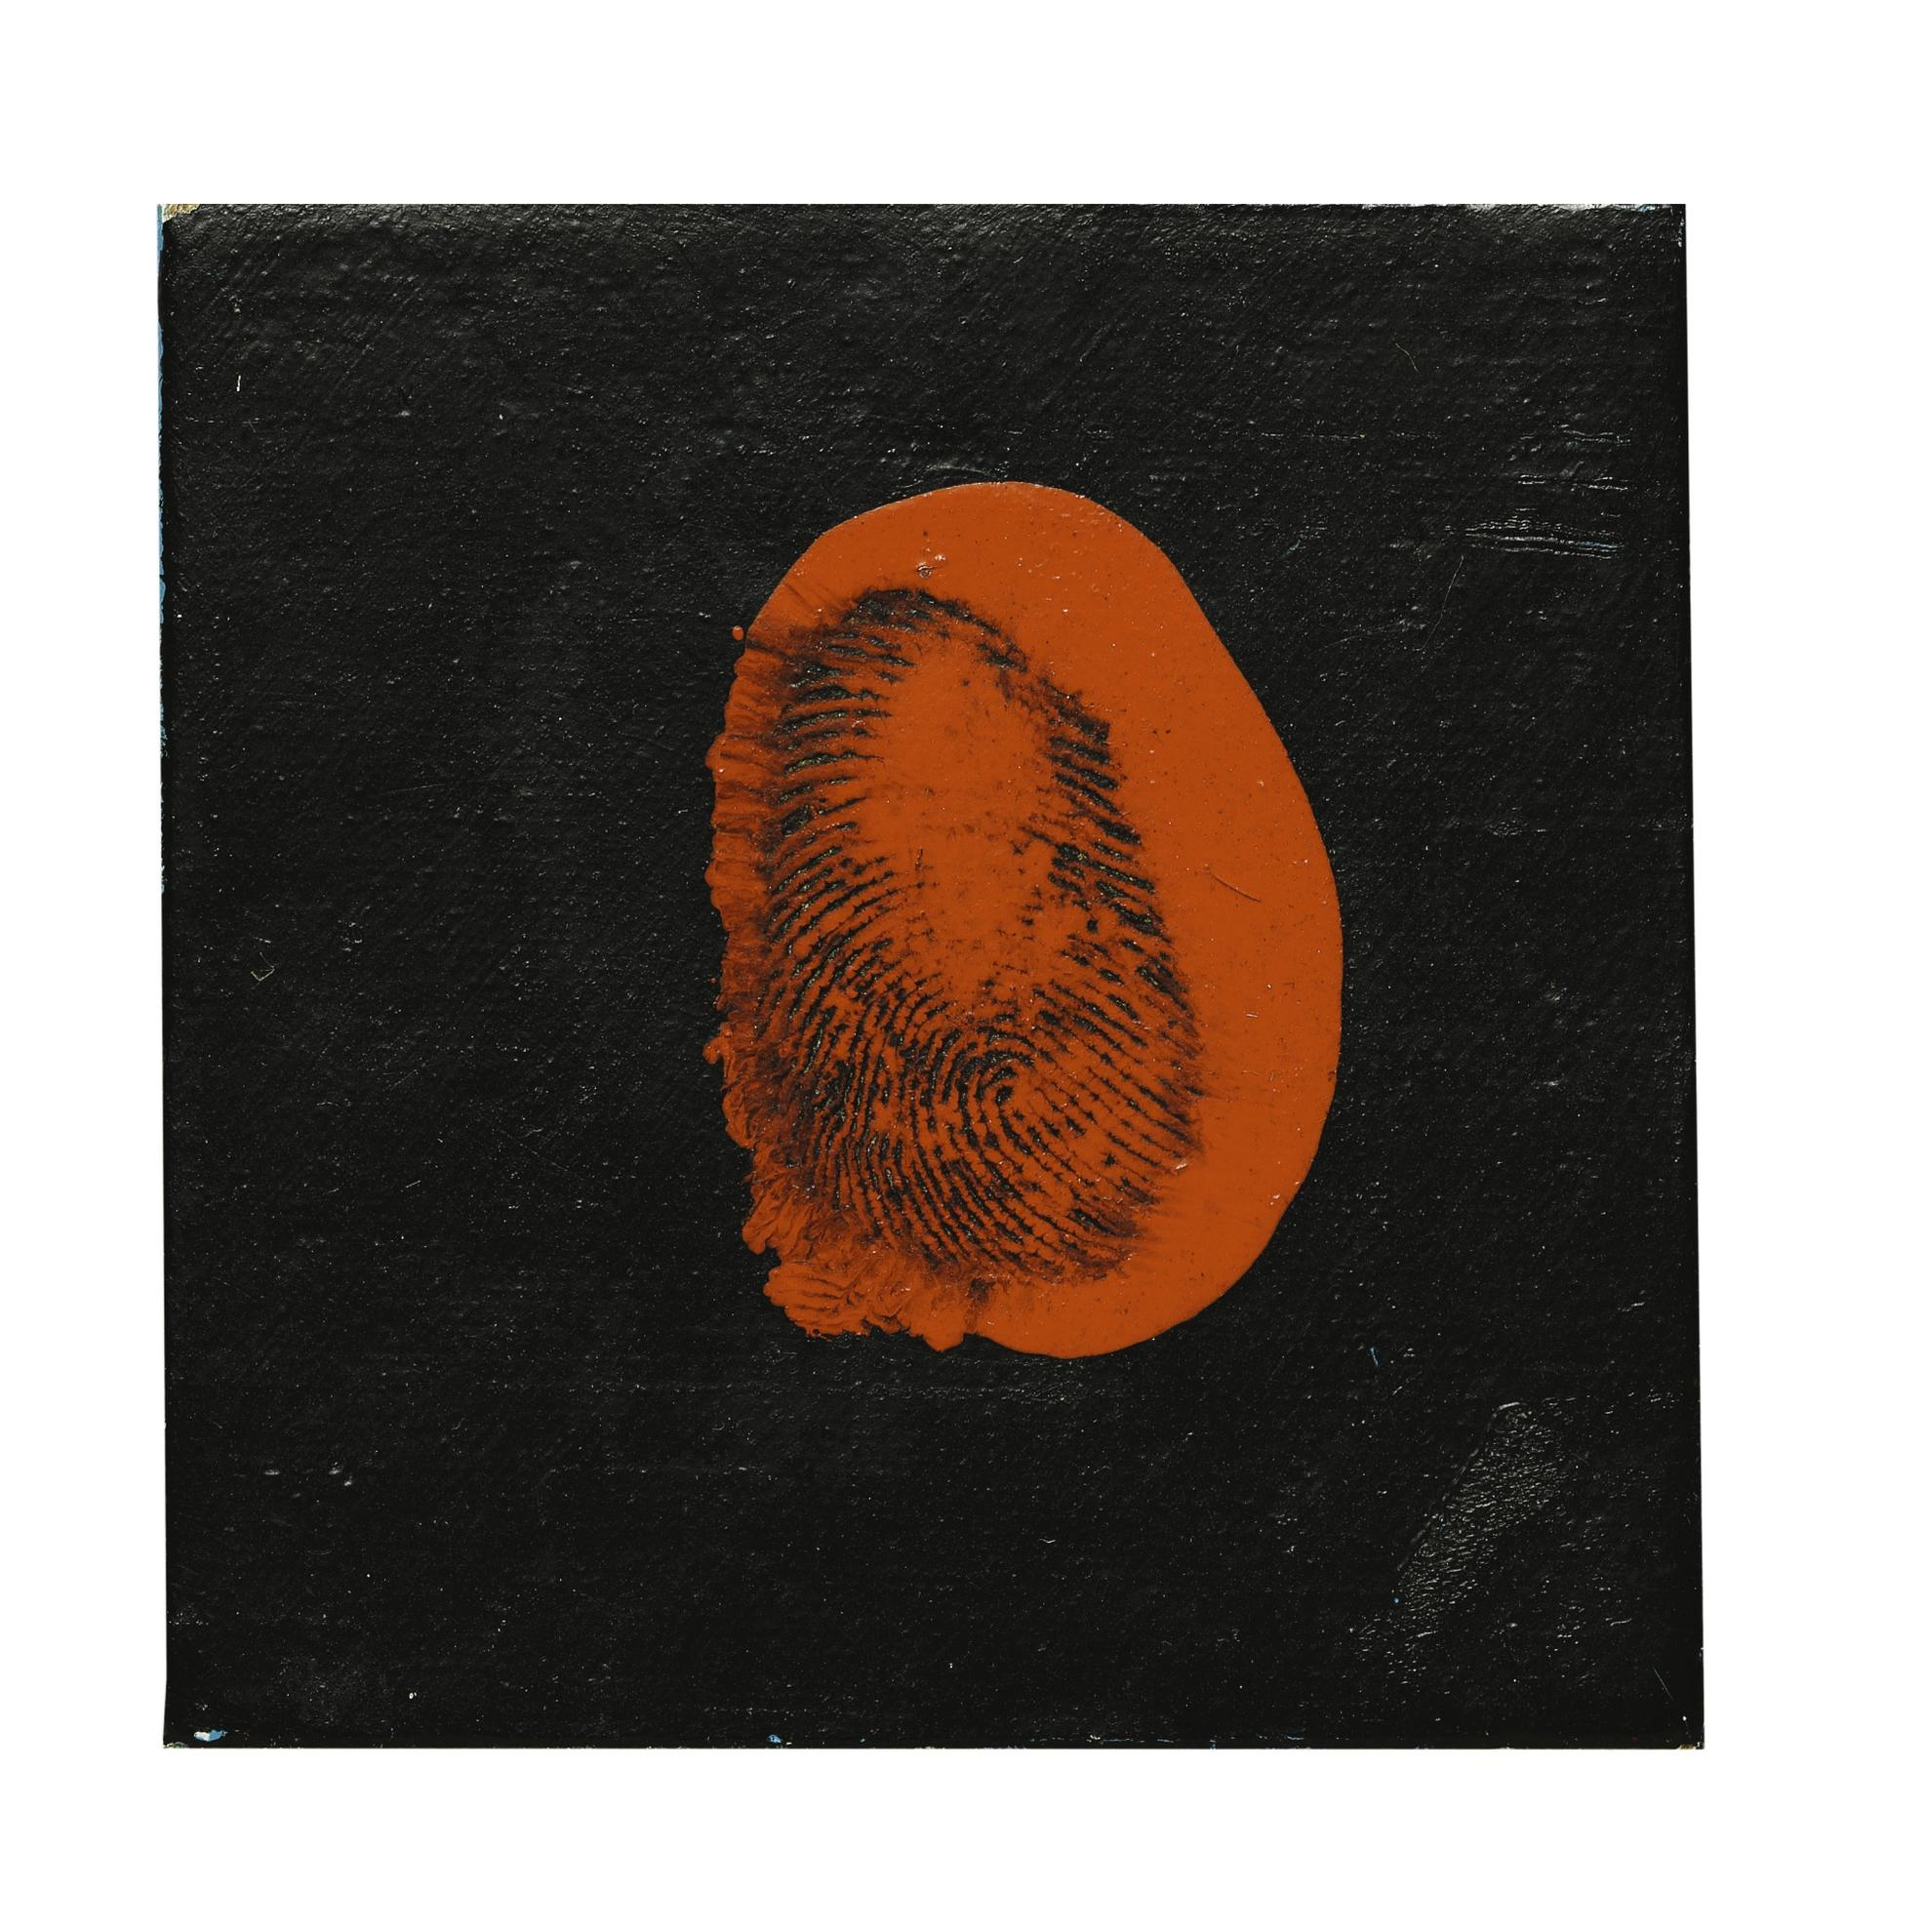 Richard Pettibone-Thumbprint-1981